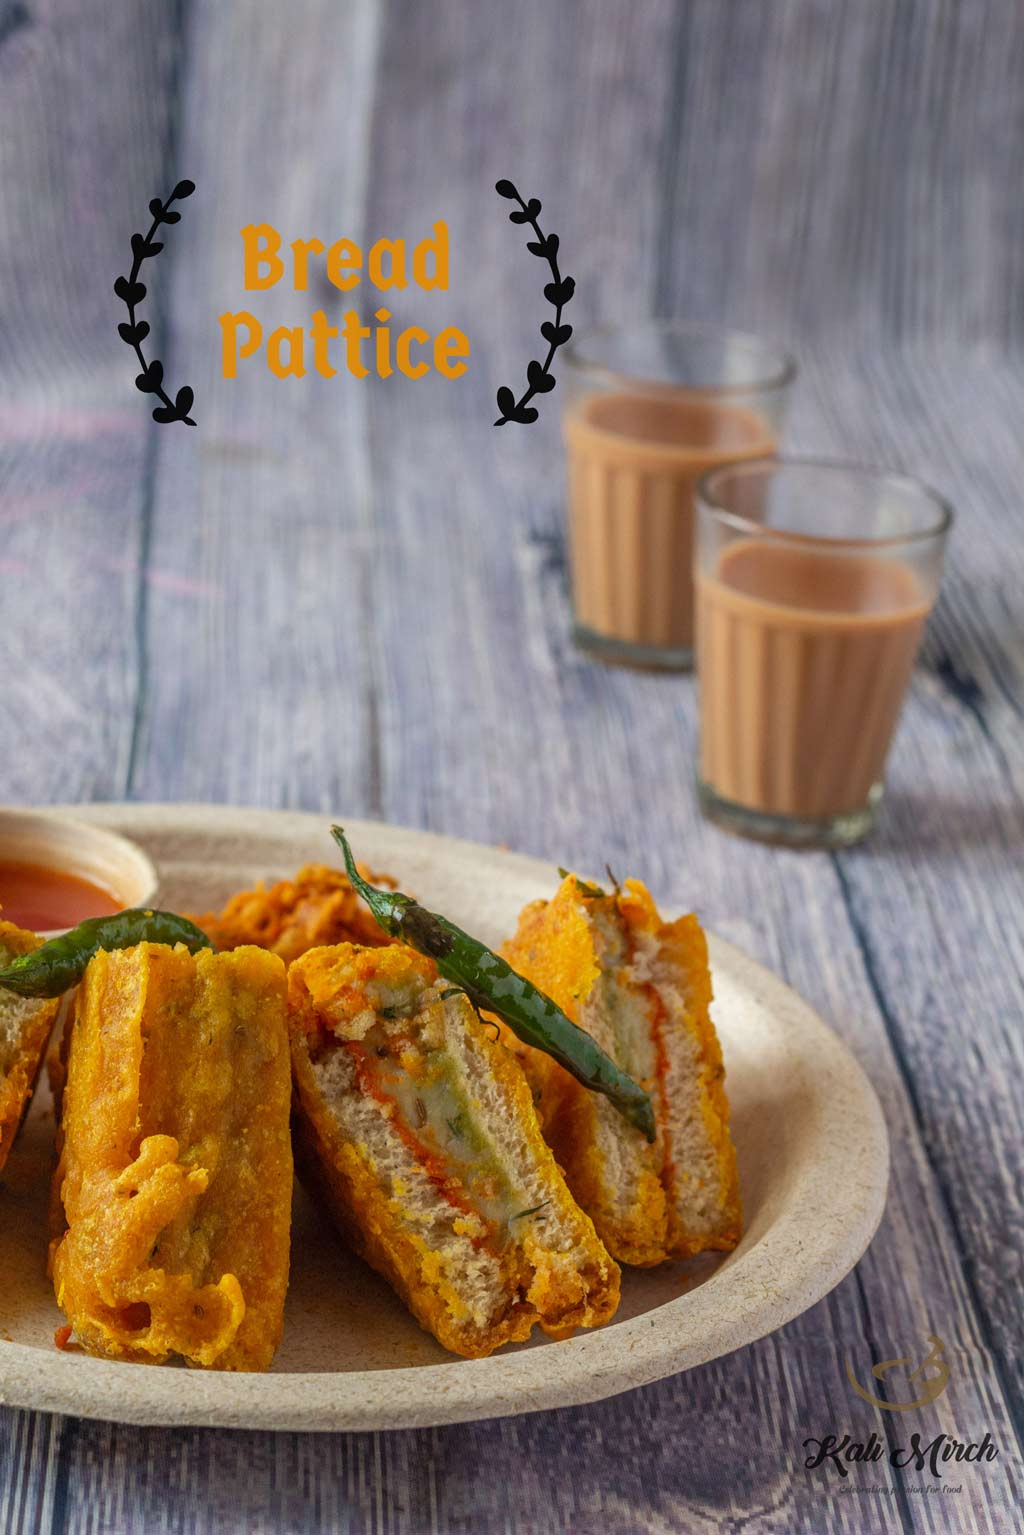 Bread Pakoda-Bread Patties